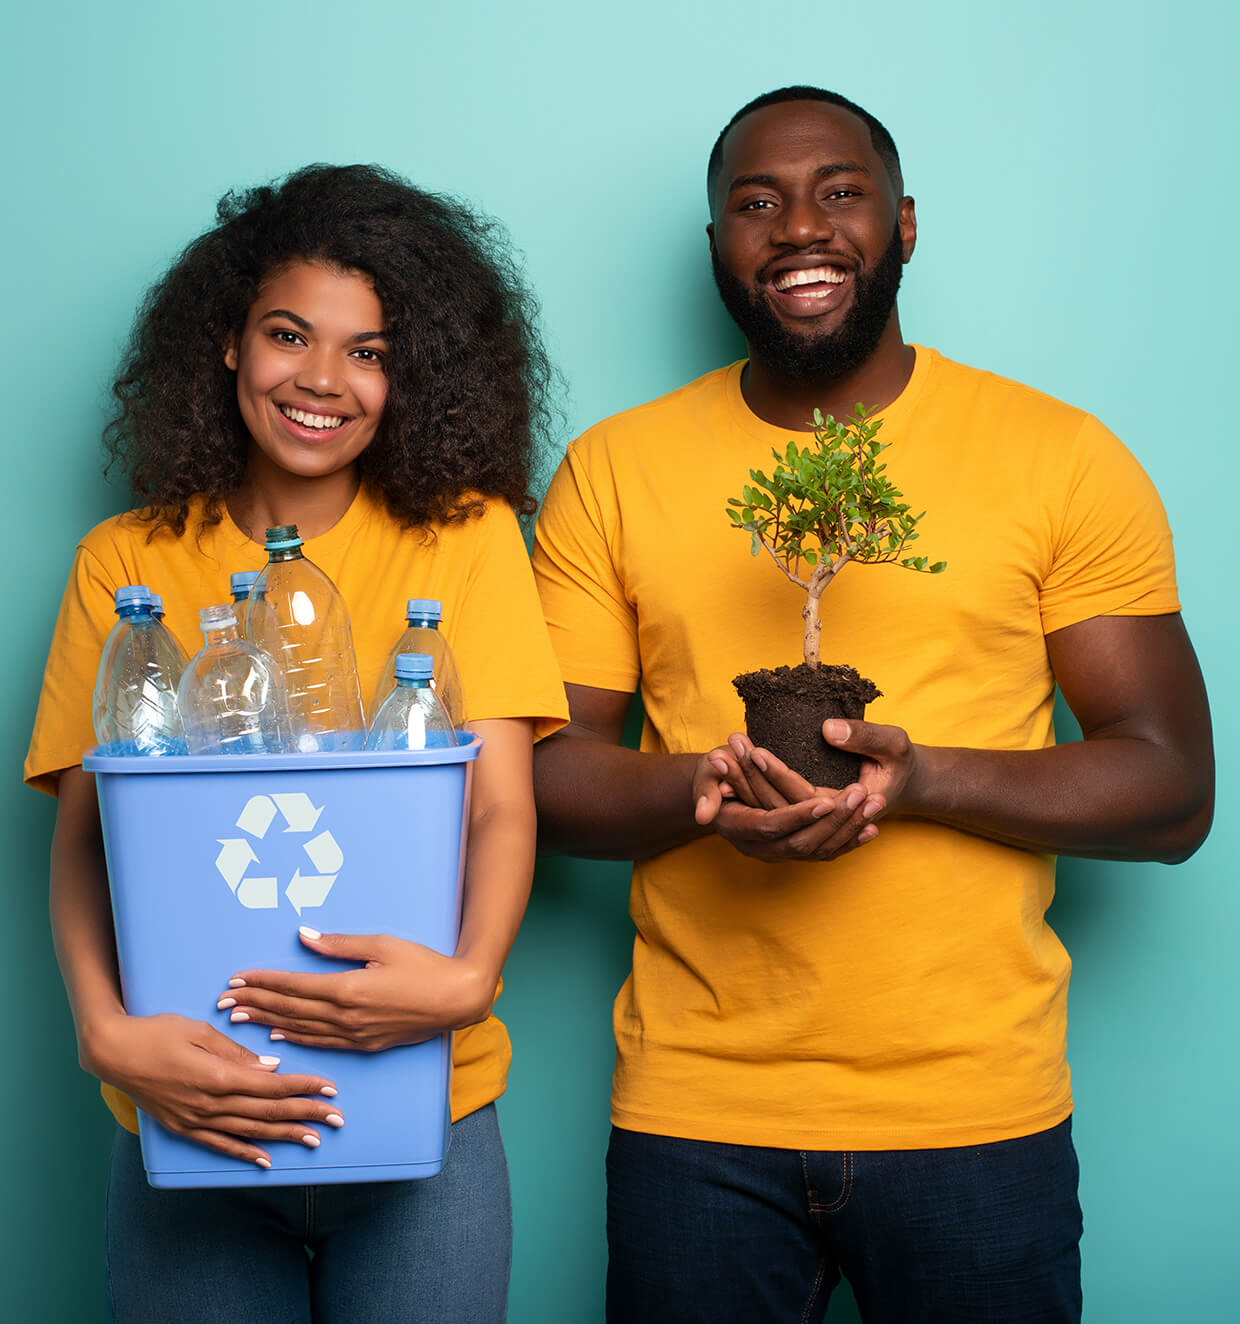 Two people holding plastic bottles and a plant